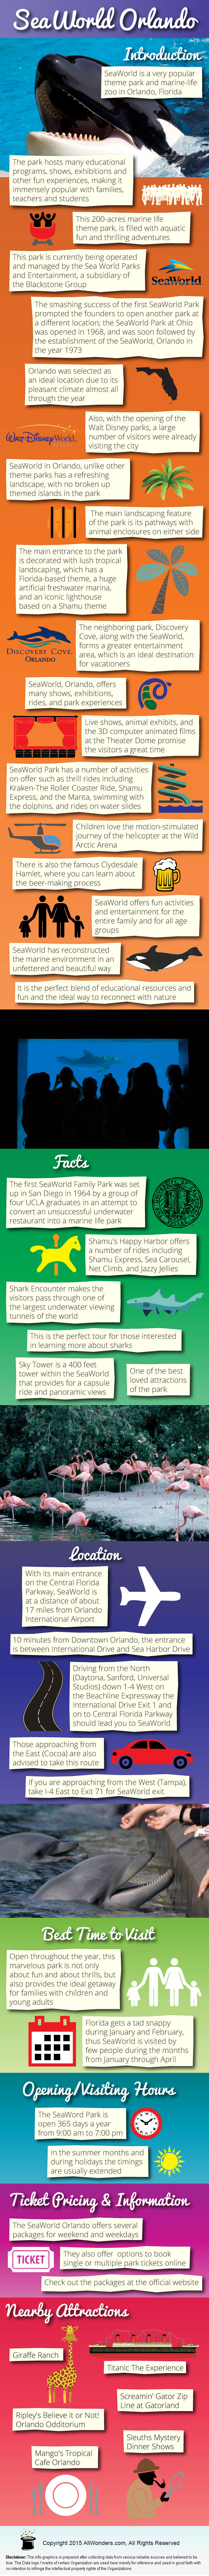 Seaworld, Orlando - Facts & Infographic